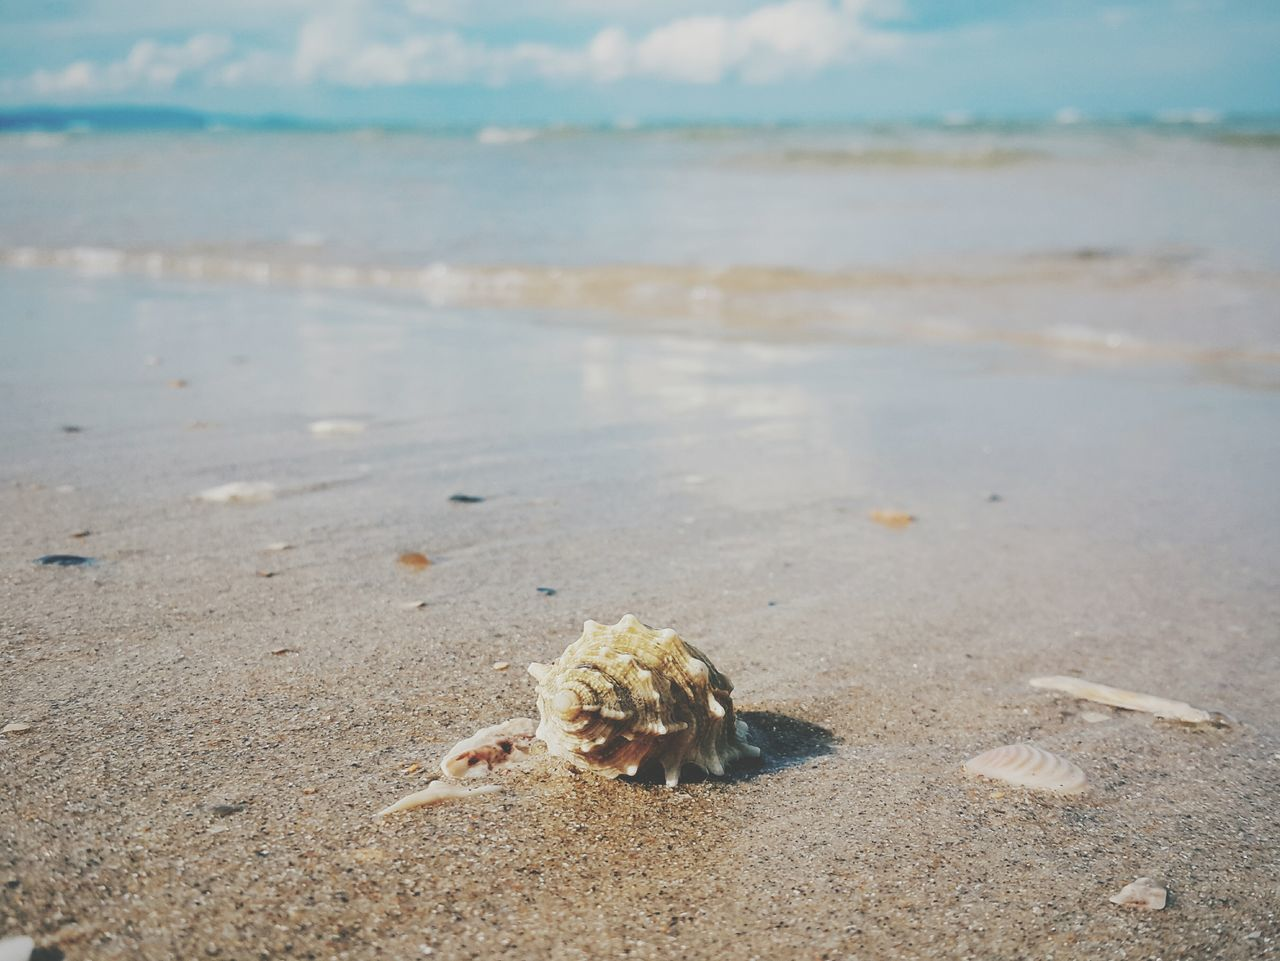 Stop!! Nature Relaxing Thailand Samsung Galaxy Note 4 Sea Landscape Sand Snail